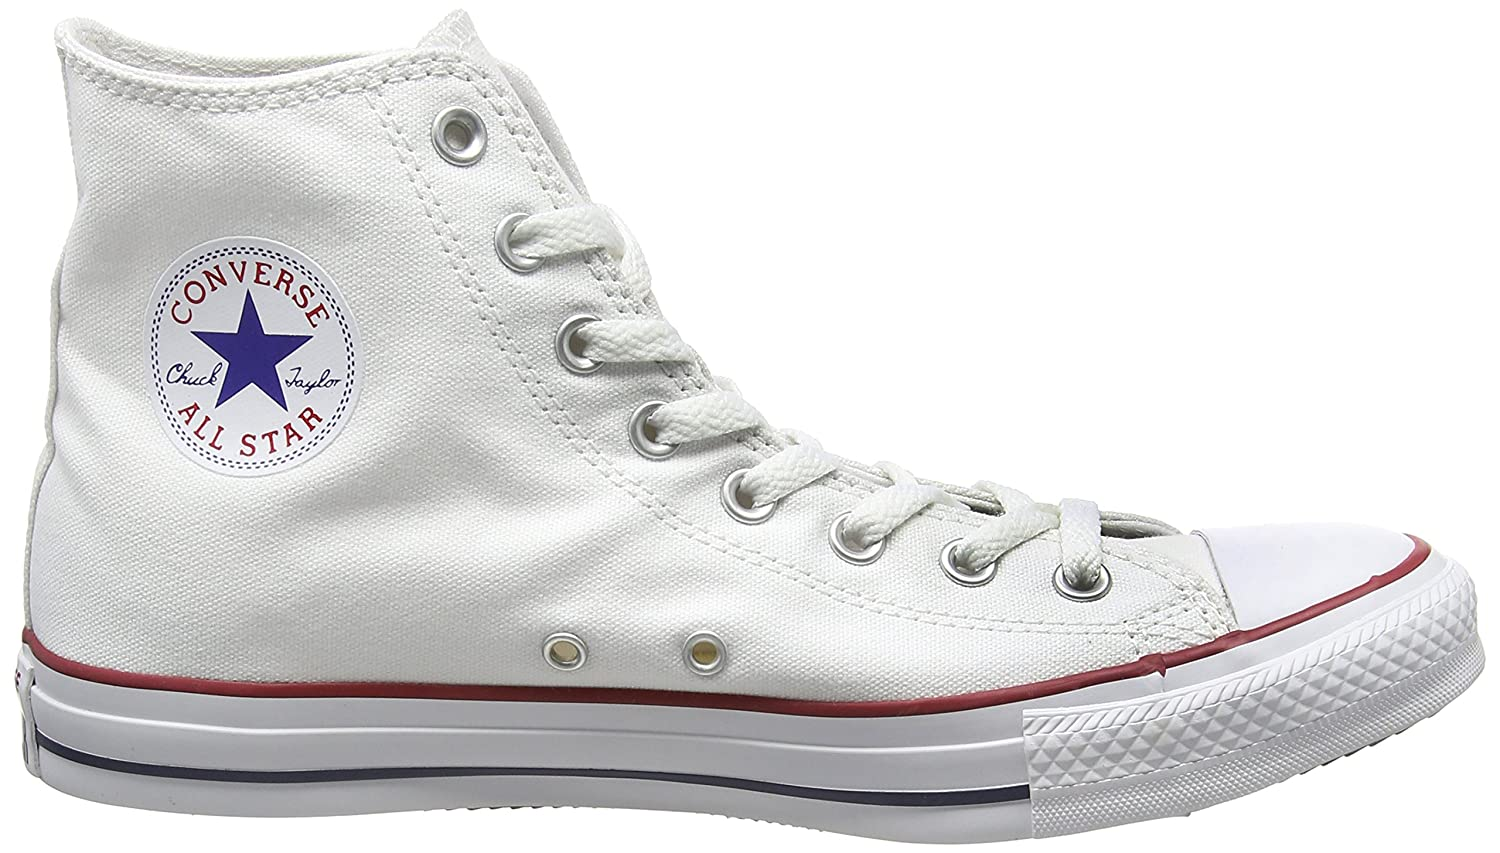 Converse Unisex-Erwachsene Ct As Core High-Top Weiß Weiß High-Top bbf2f3